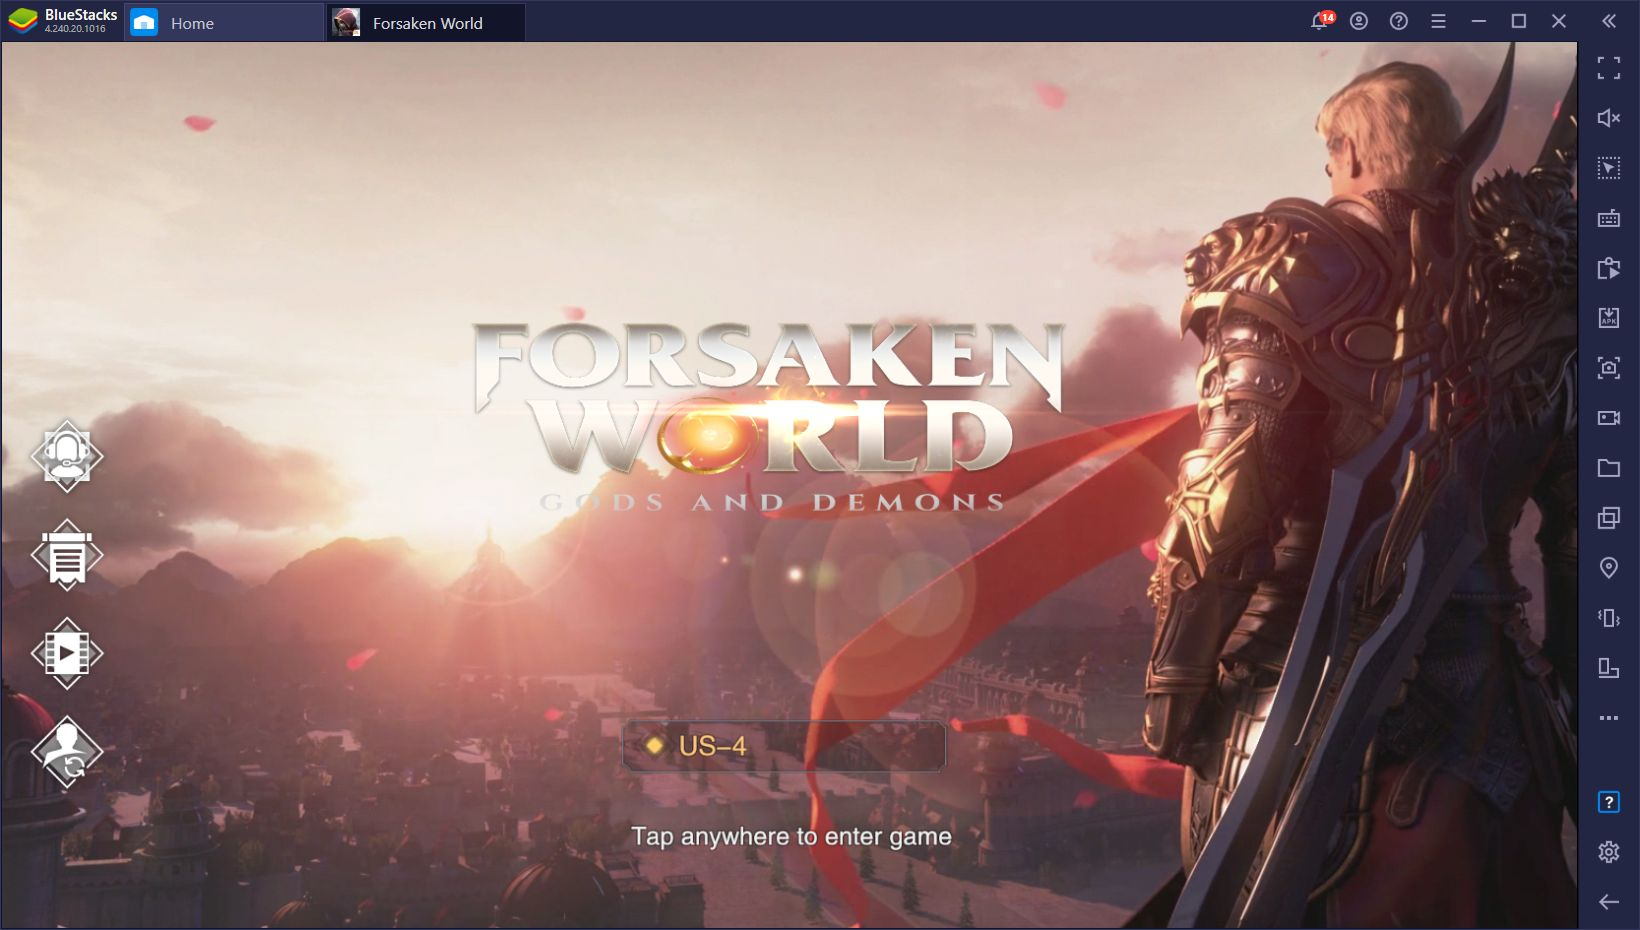 Forsaken World: Gods and Demons Now Available on PC With BlueStacks